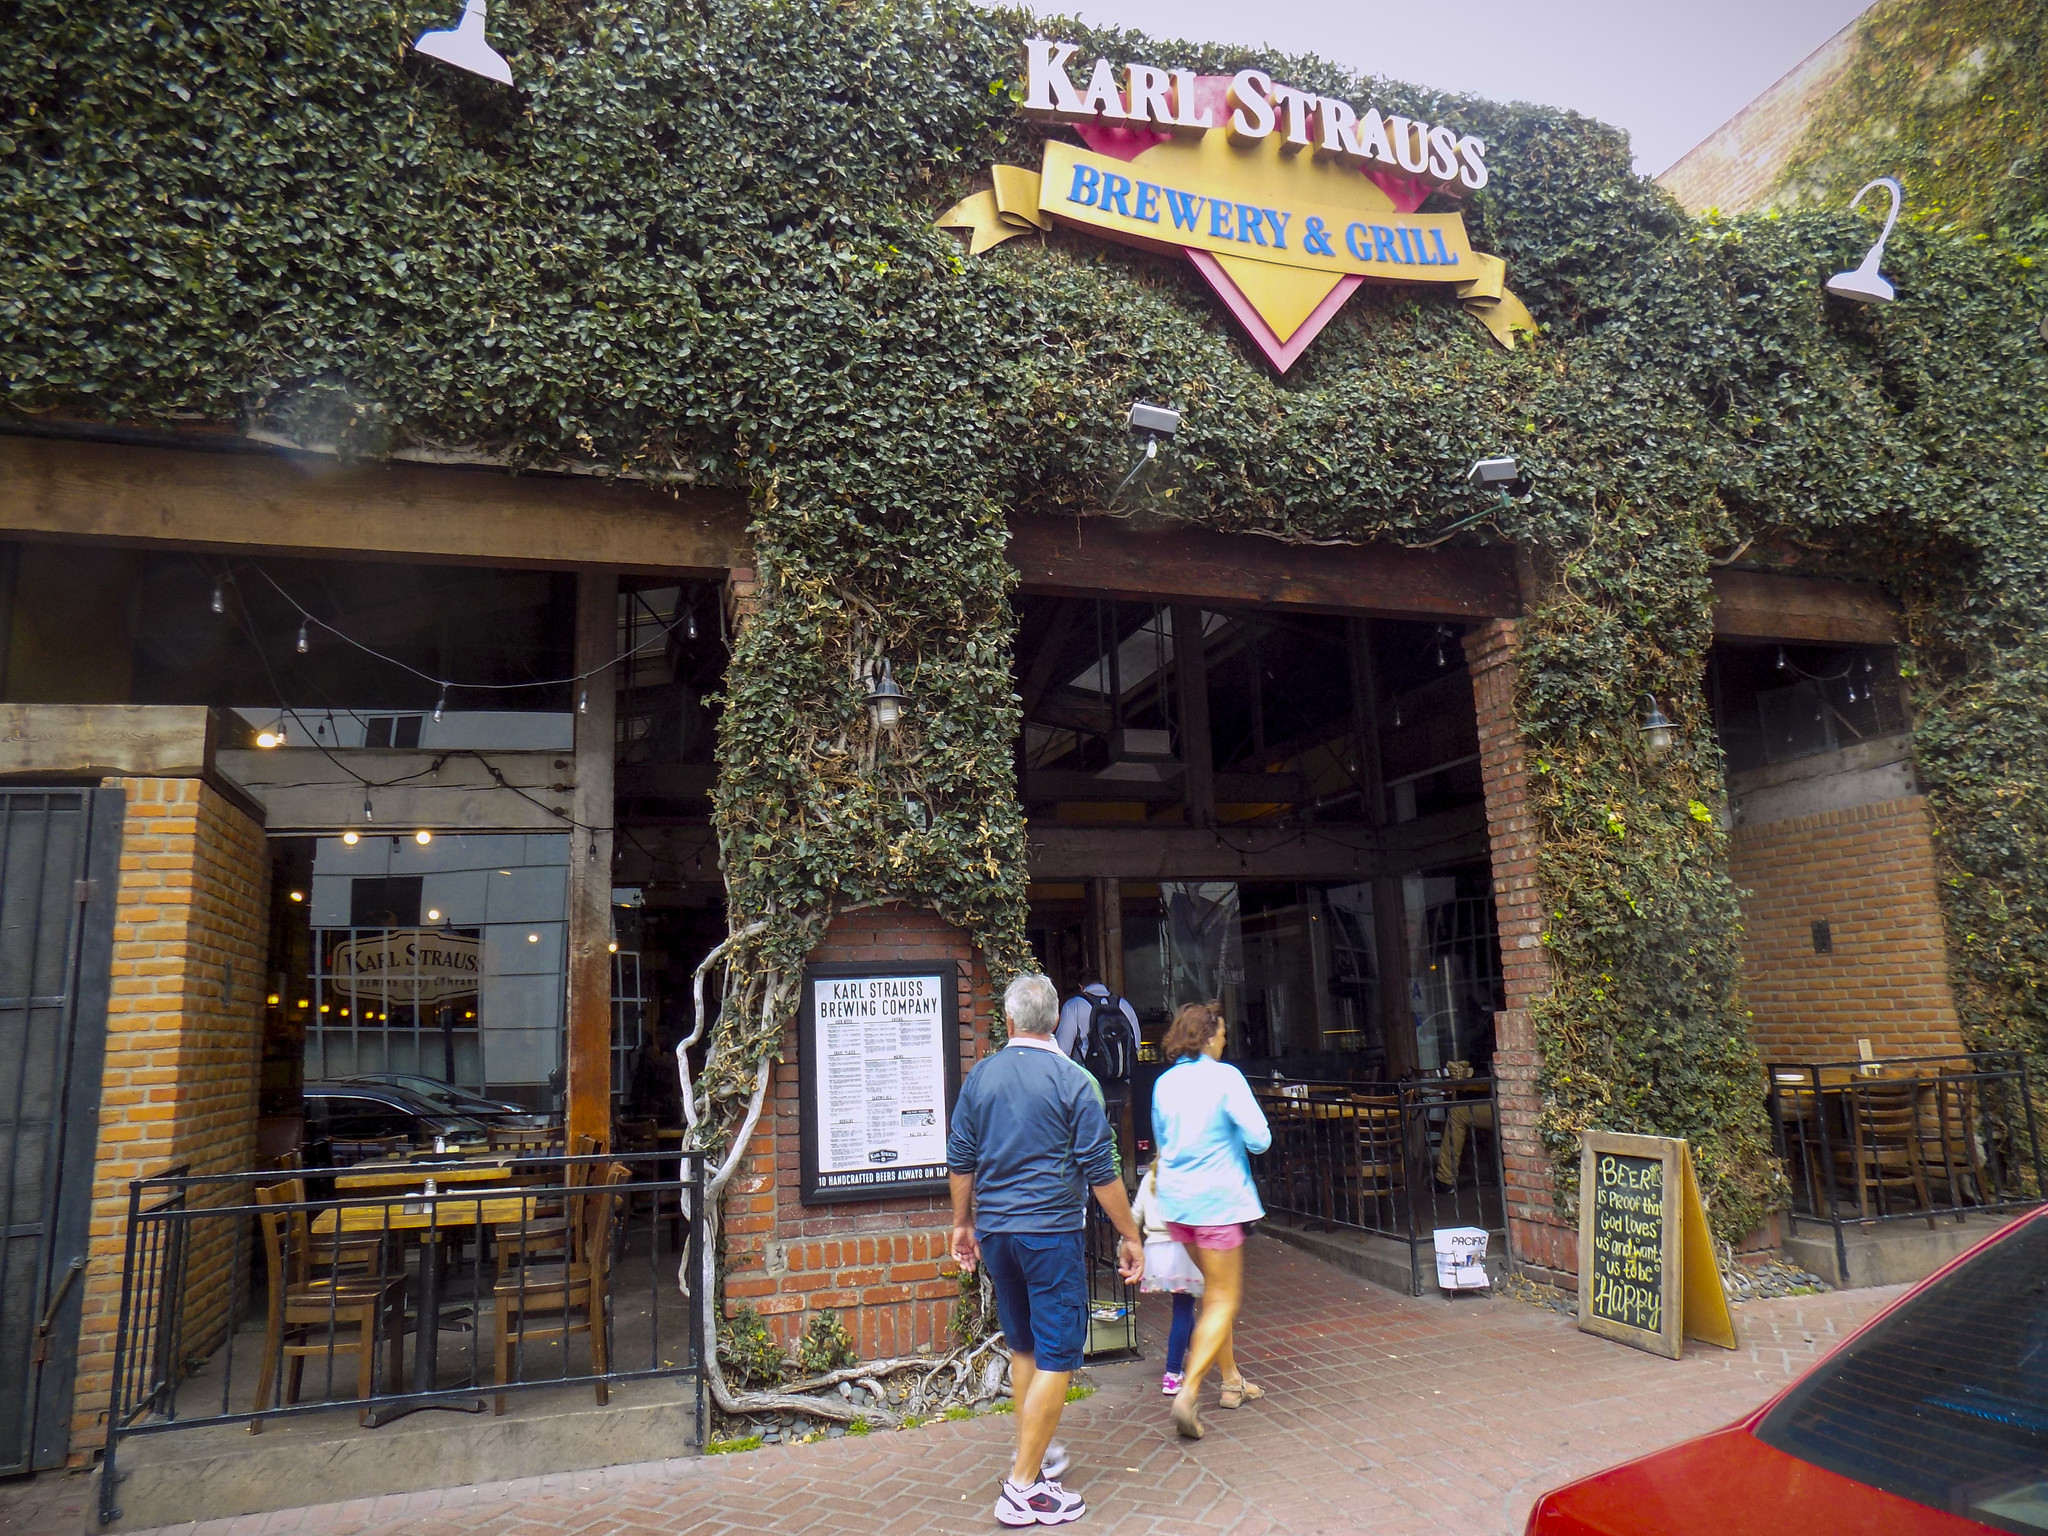 Karl Strauss Brewing Co. in downtown San Diego.